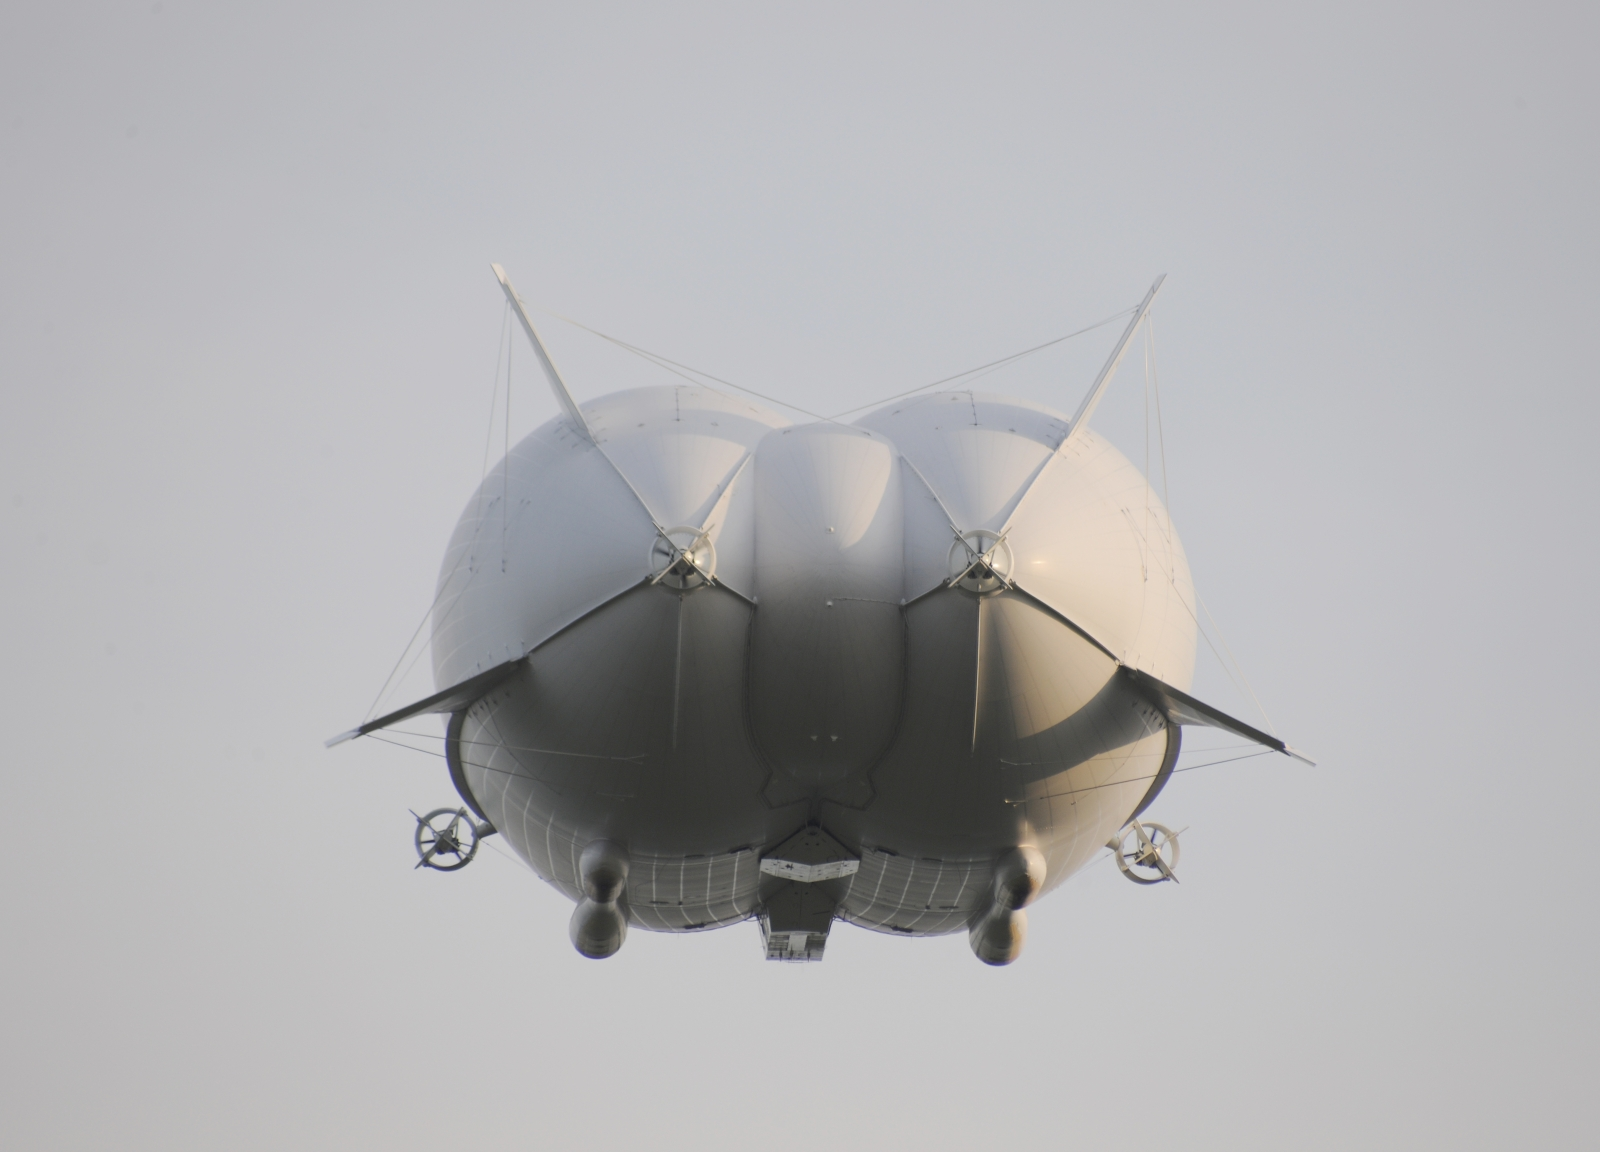 This is the back of the Airlander 10, which has been compared by some media outlets to Kim Kardashian's derrière